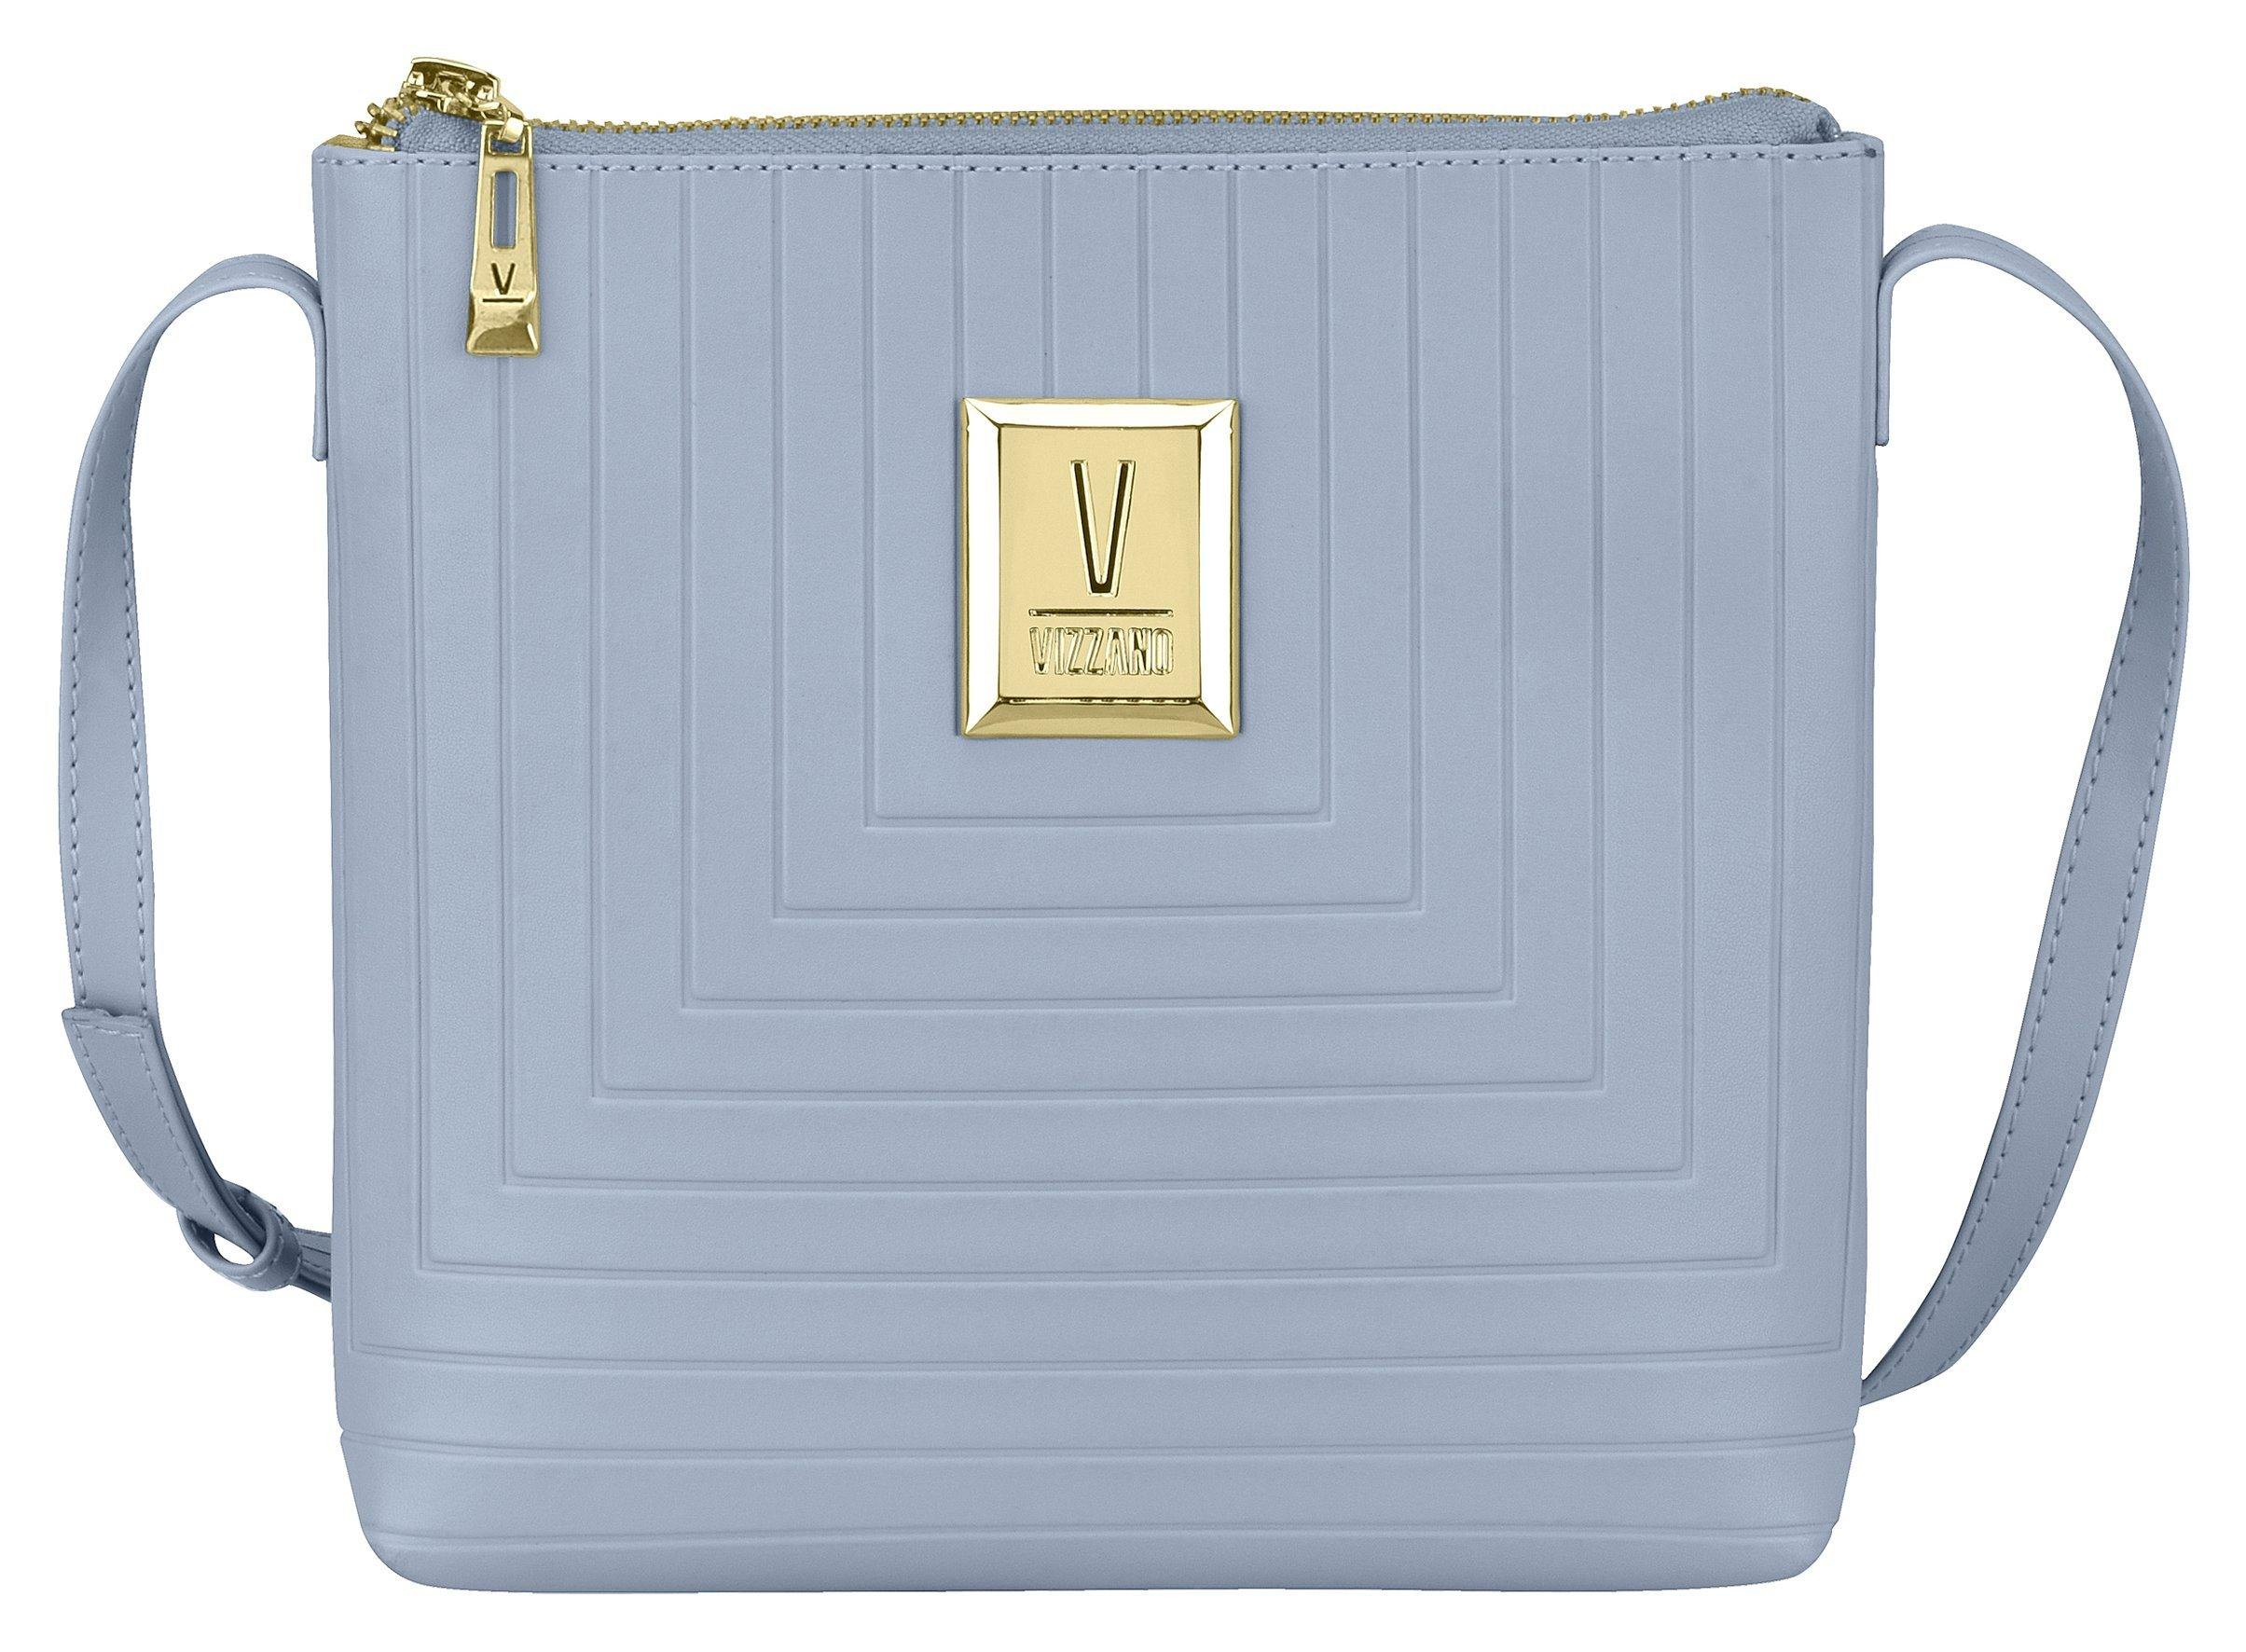 Vizzano 10000-1 Cross Body Bag in Jeans